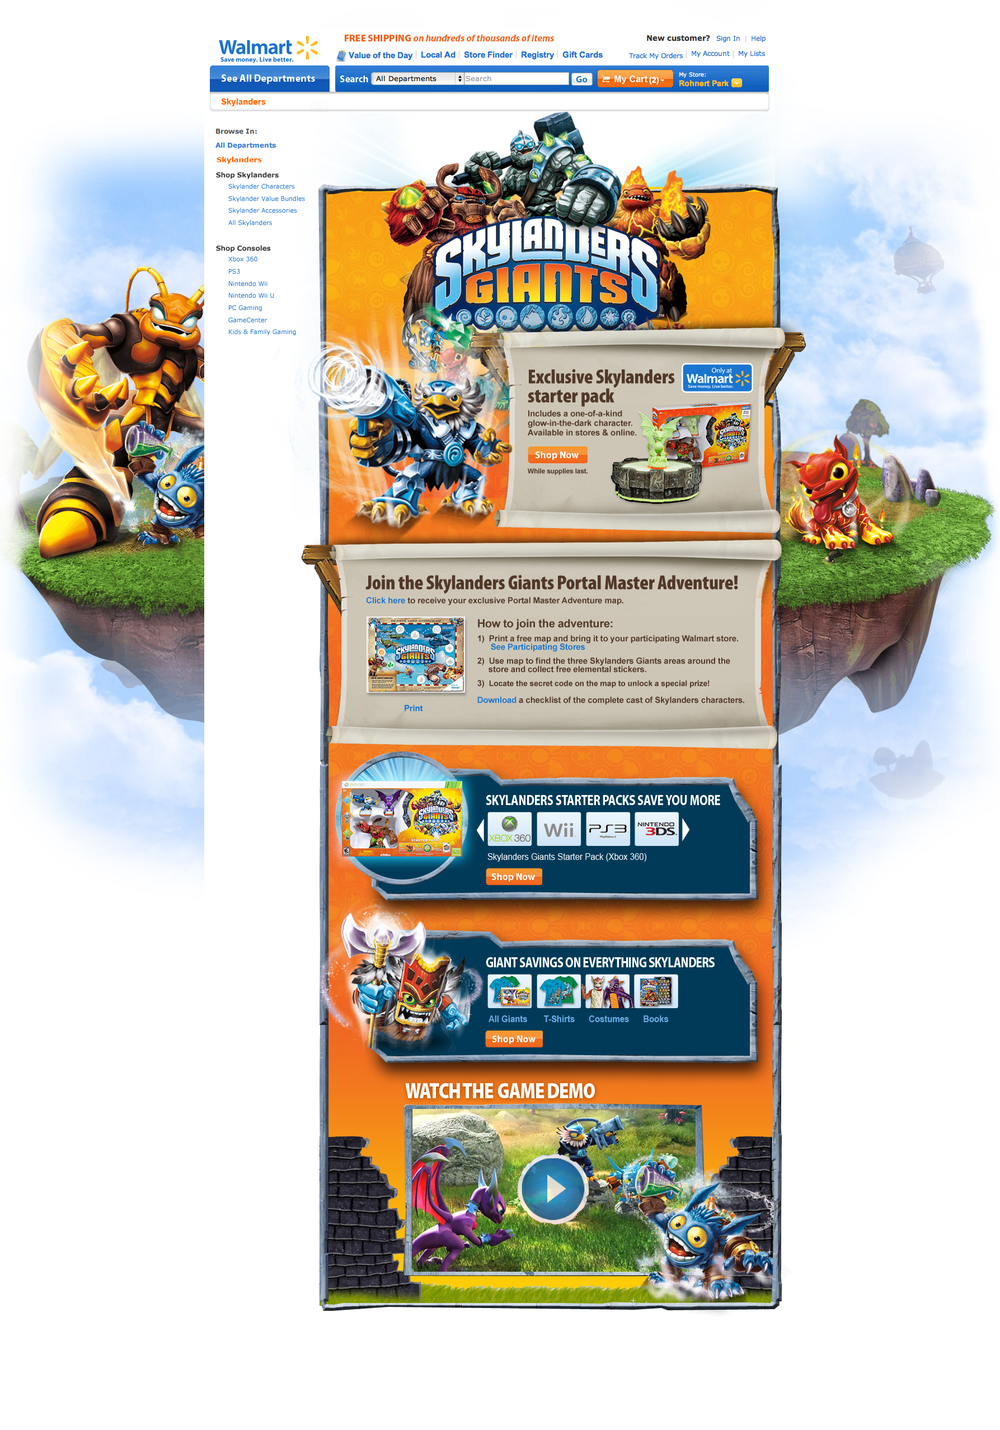 8680_21635_SkylandersGiants_LP_Version1_ShopNow.jpg